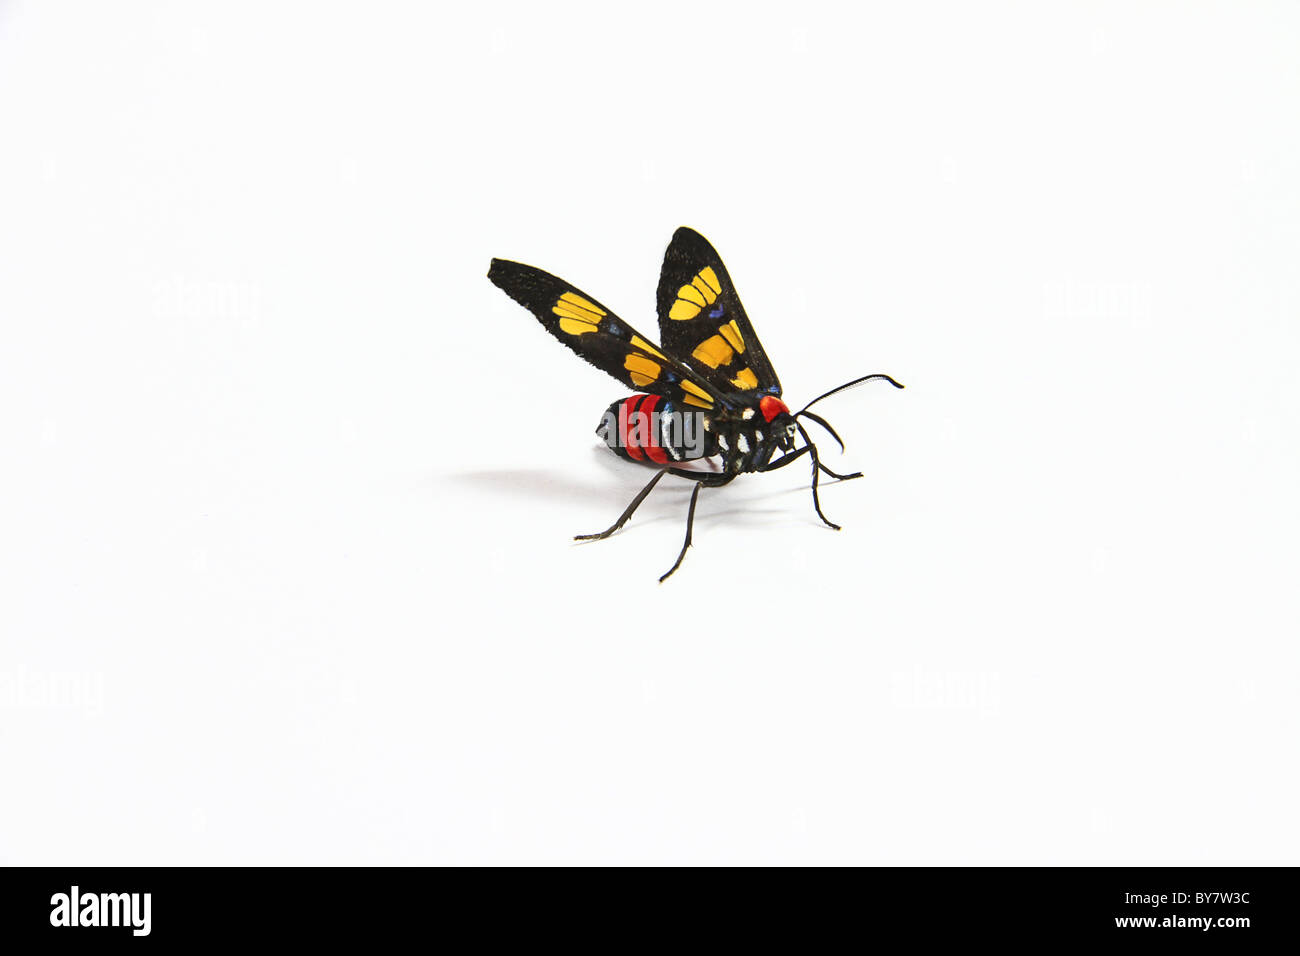 Euchromia polymena is a moth of the Arctiidae family. - Stock Image